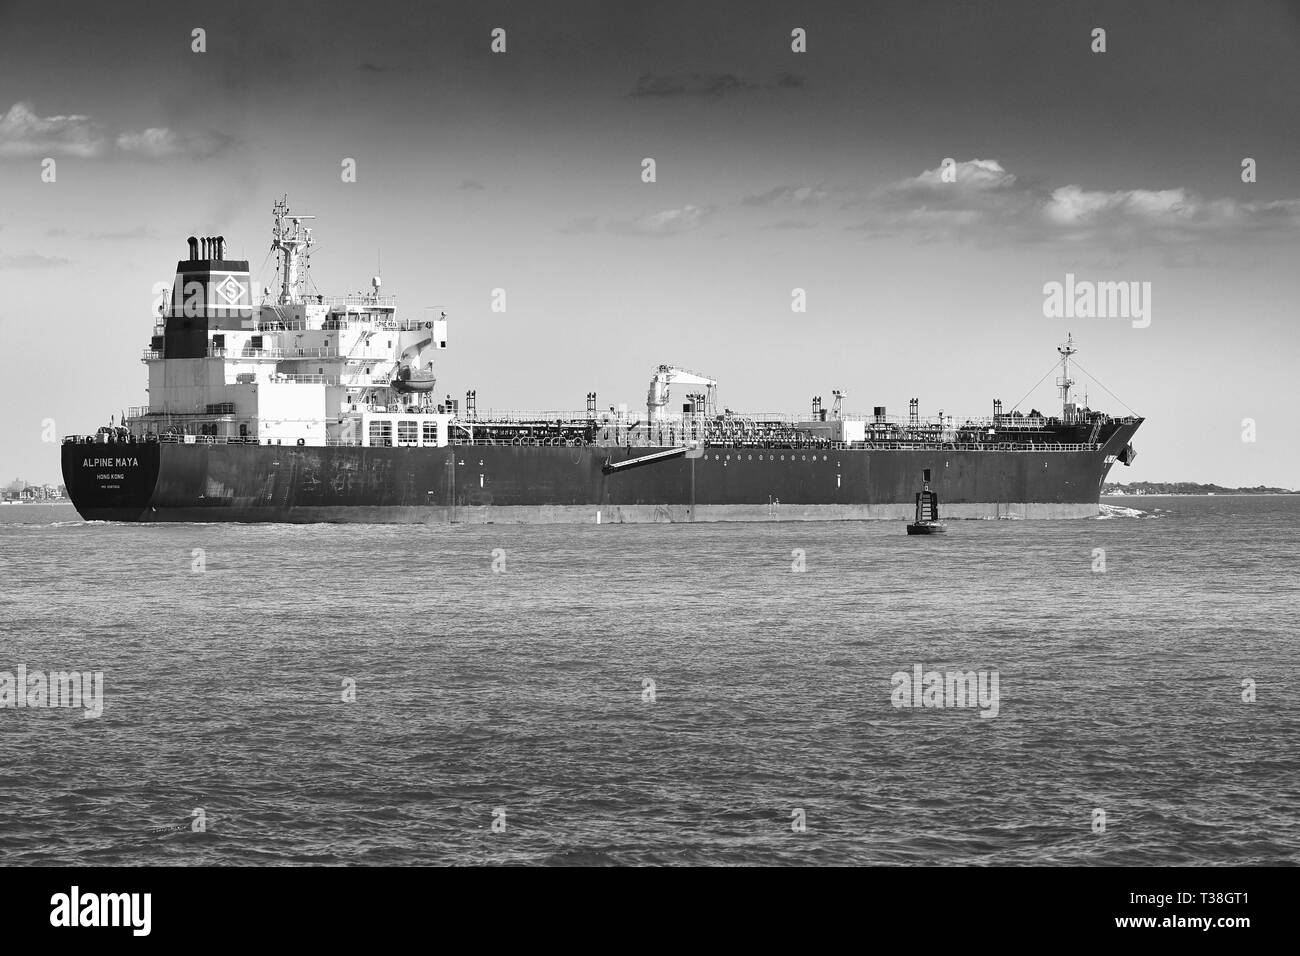 Black and White Photo Of The Chemical/Oil Products Tanker (Oil Tanker), ALPINE MAYA, Departs The Fawley ESSO Oil Refinery At The Port Of Southampton. - Stock Image